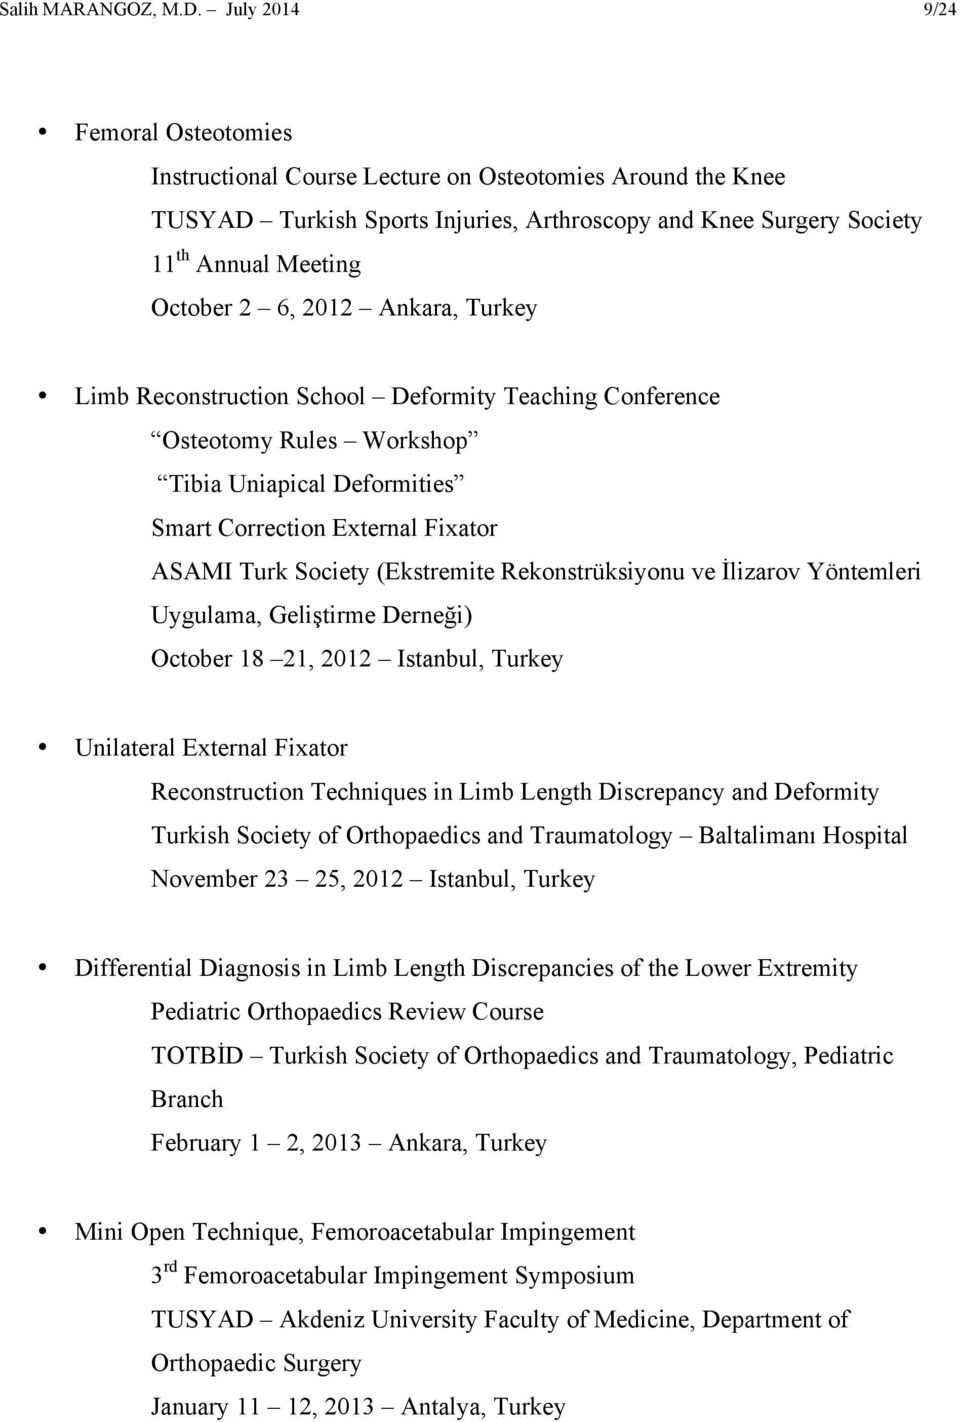 2012 Ankara, Turkey Limb Reconstruction School Deformity Teaching Conference Osteotomy Rules Workshop Tibia Uniapical Deformities Smart Correction External Fixator ASAMI Turk Society (Ekstremite